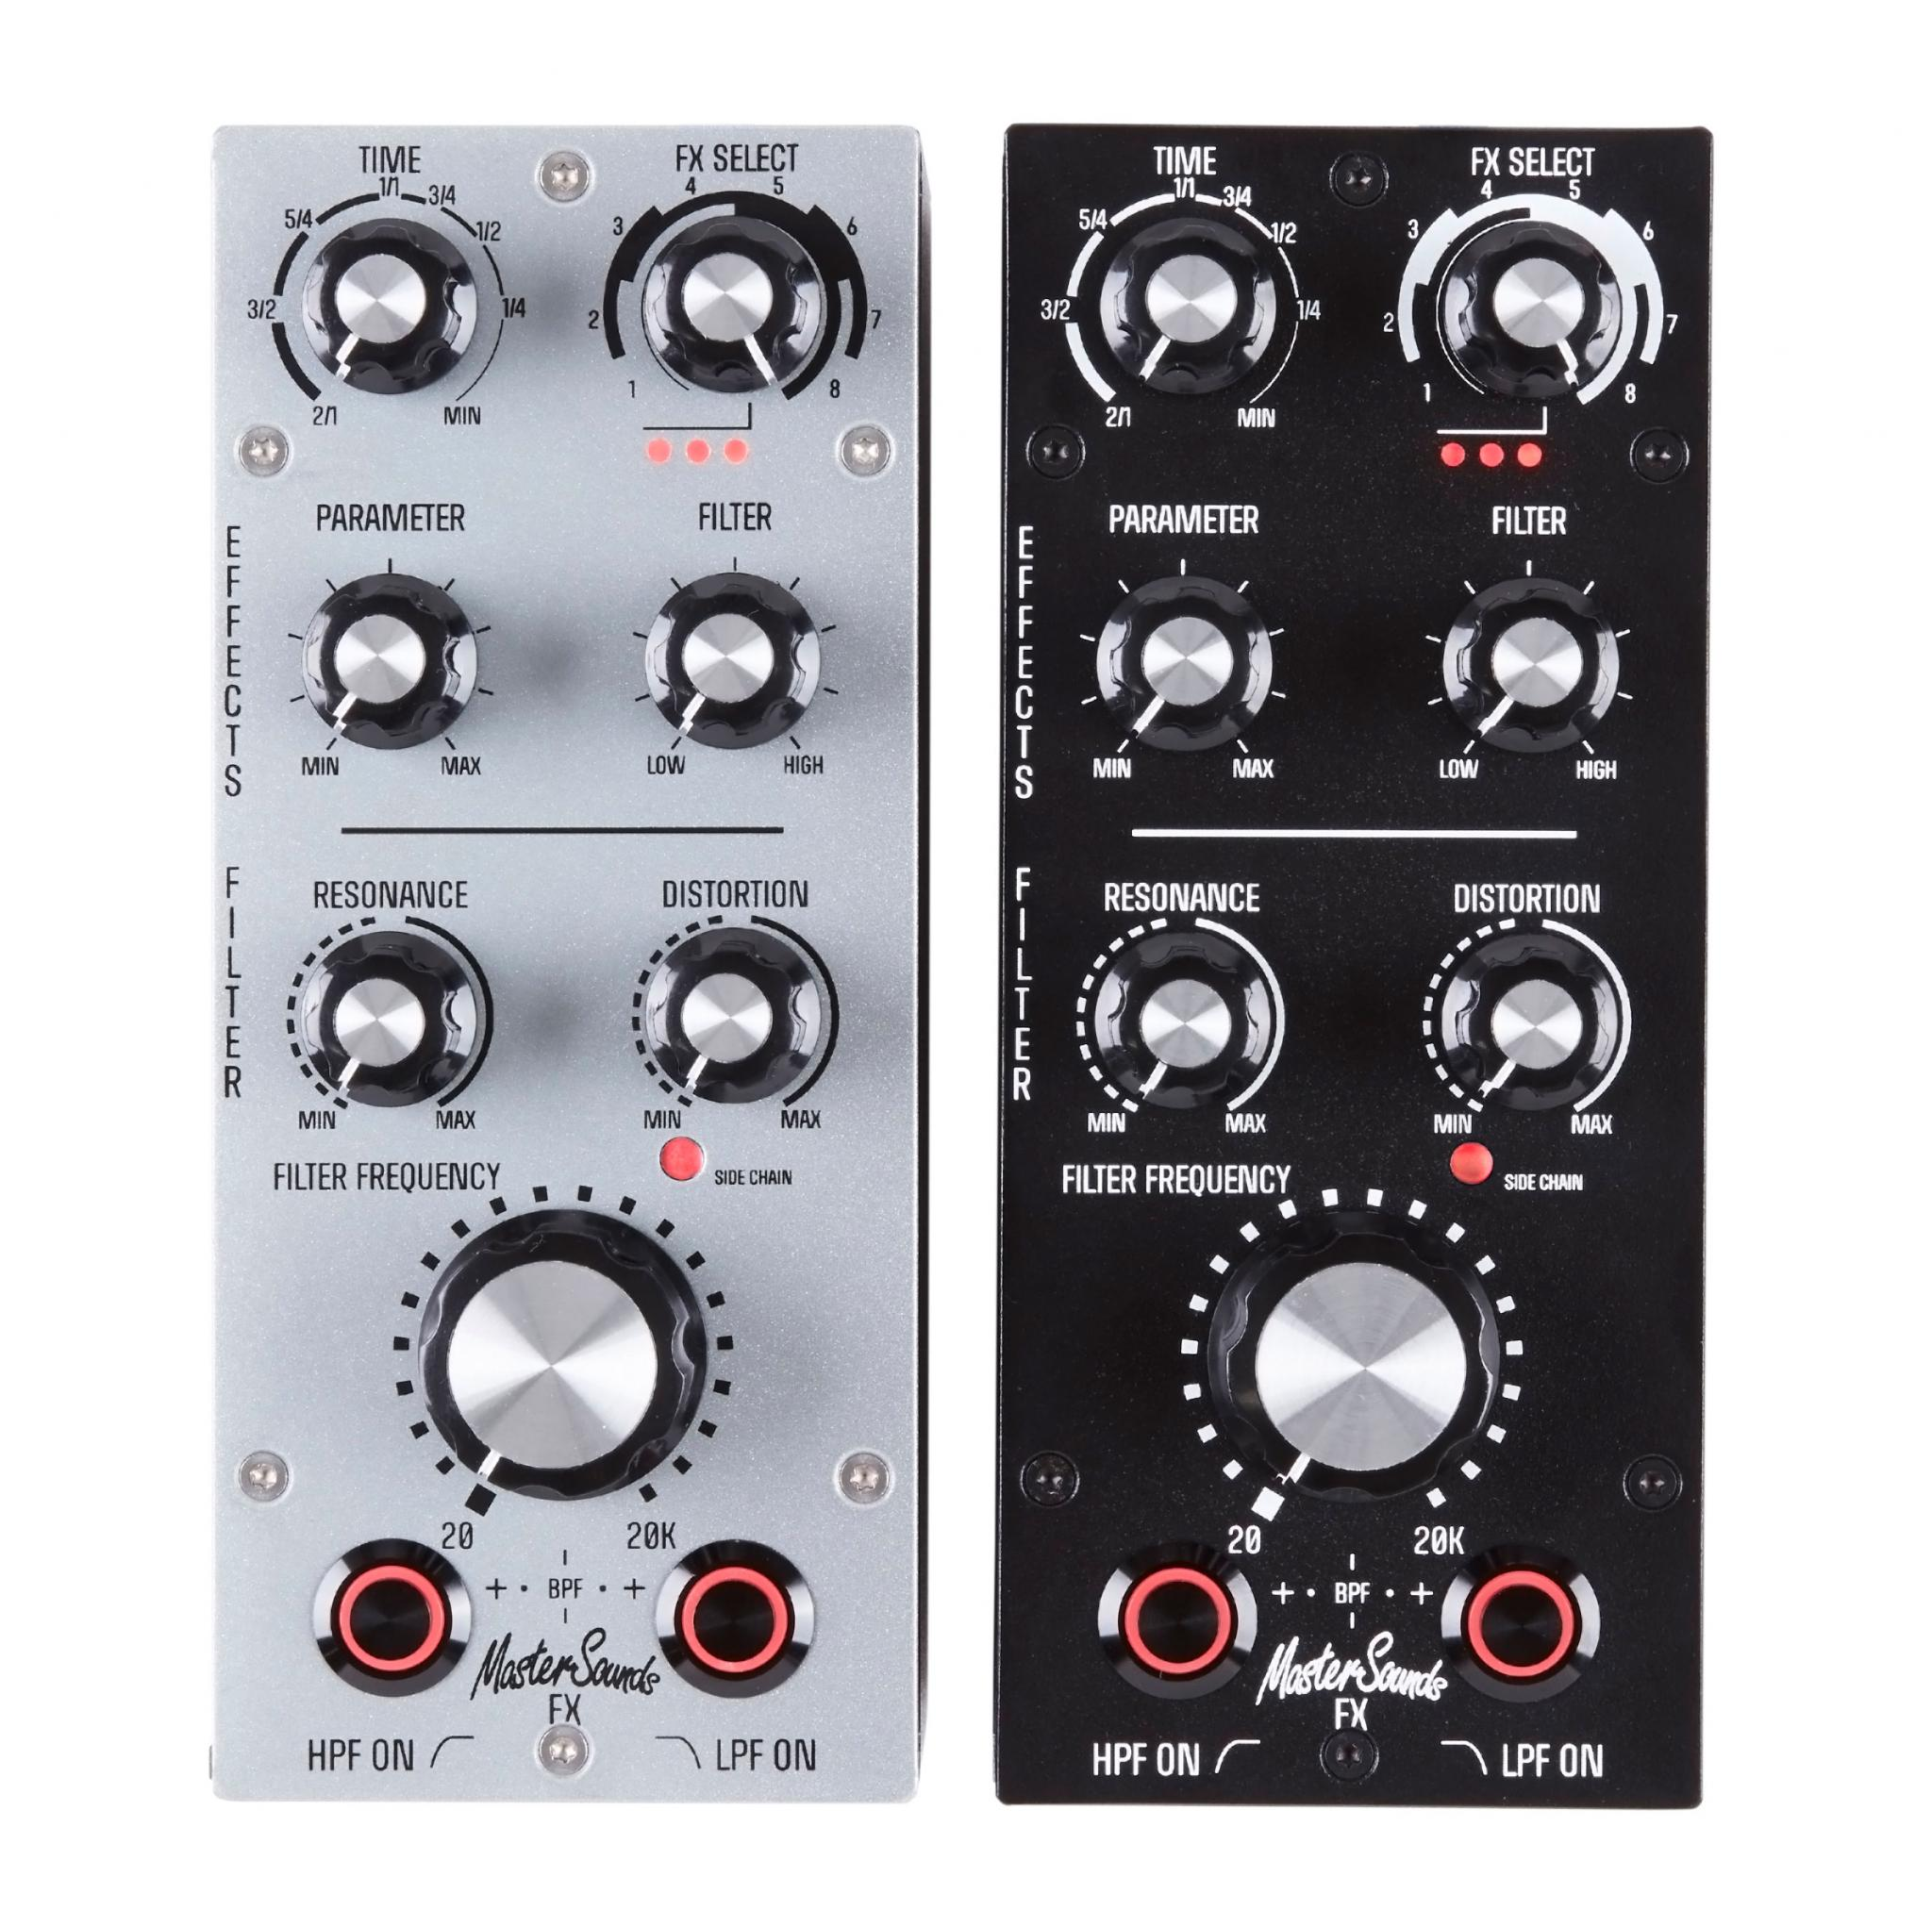 Mastersounds unleashes 4V mixers plus FX unit and more 11